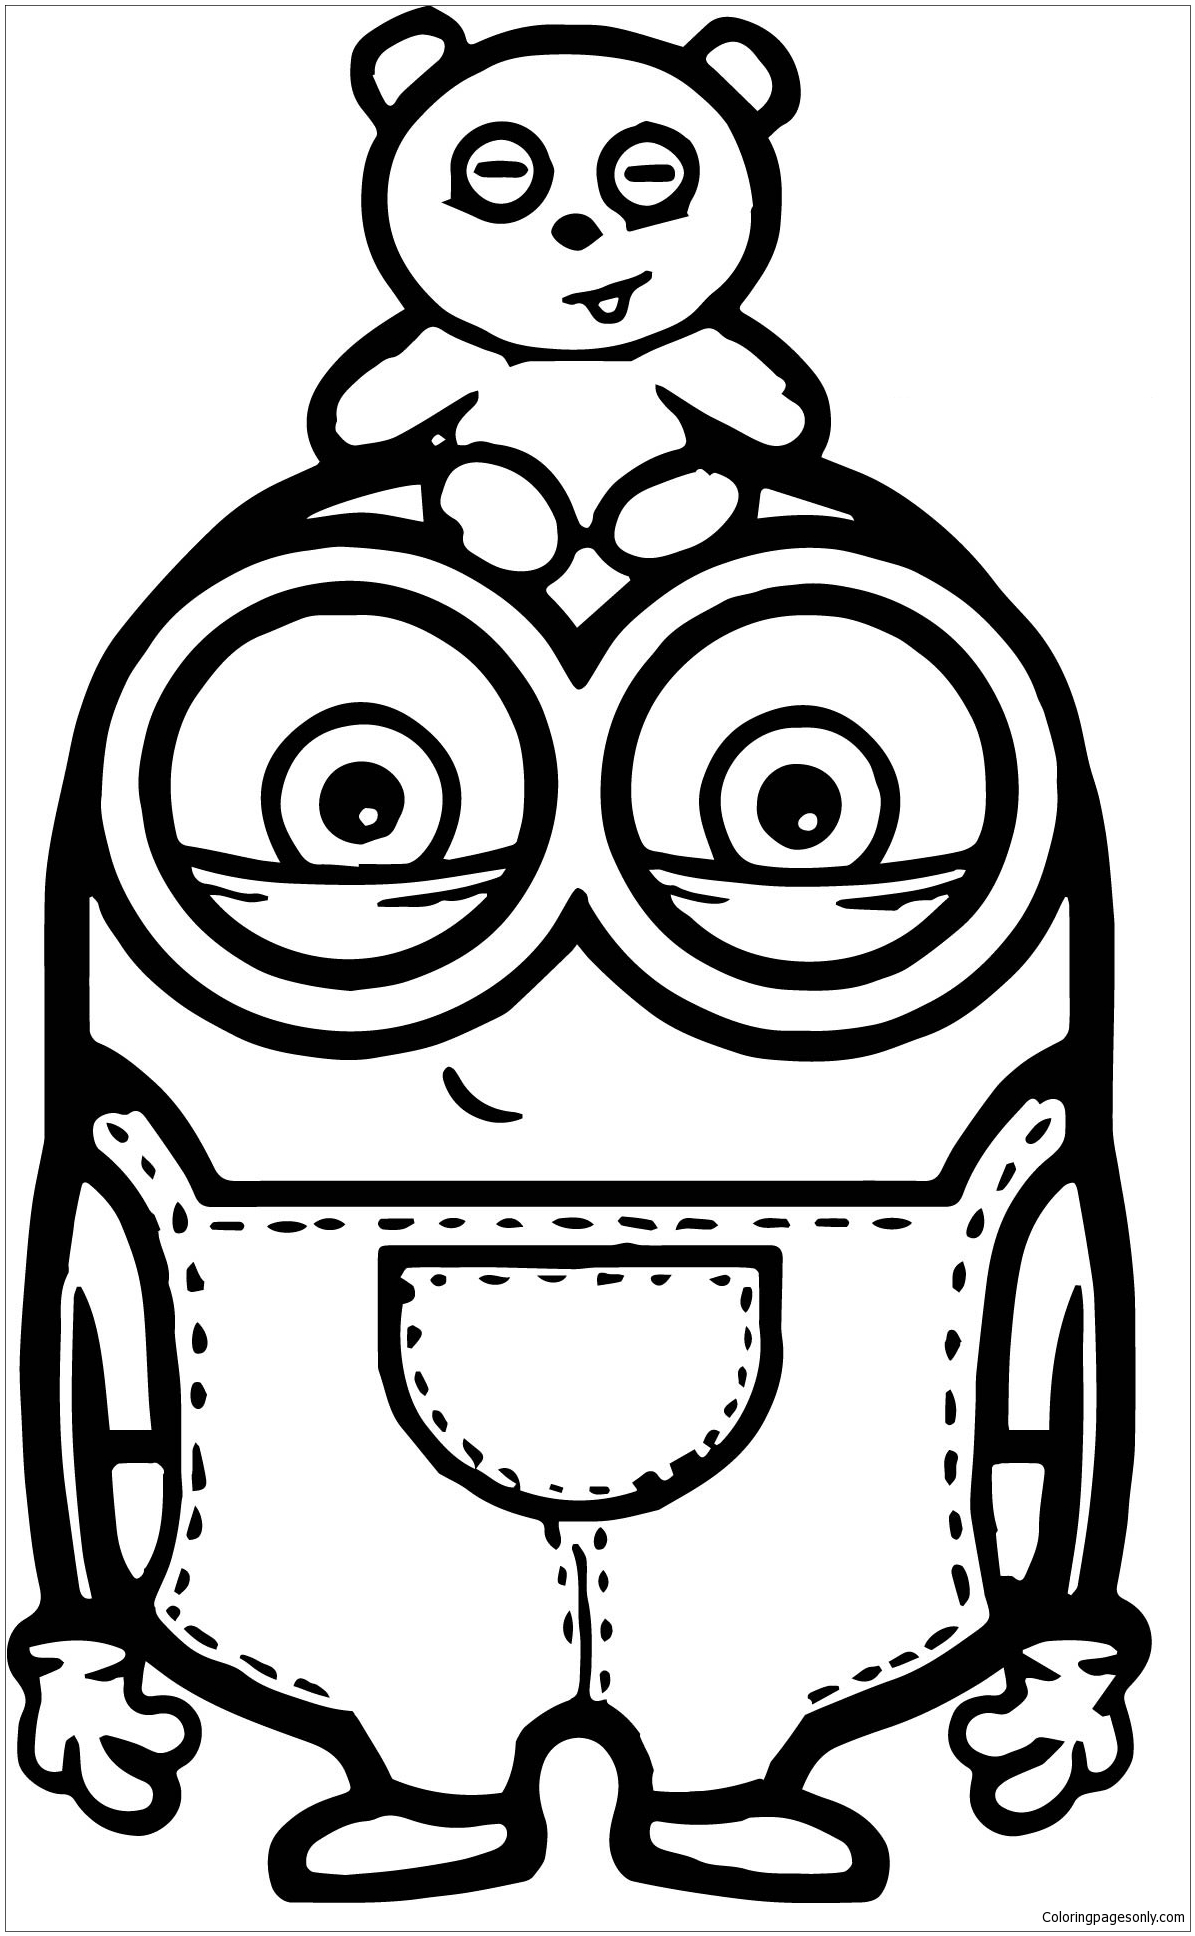 Cute Bob And Bear Minions Coloring Pages - Cartoons ...